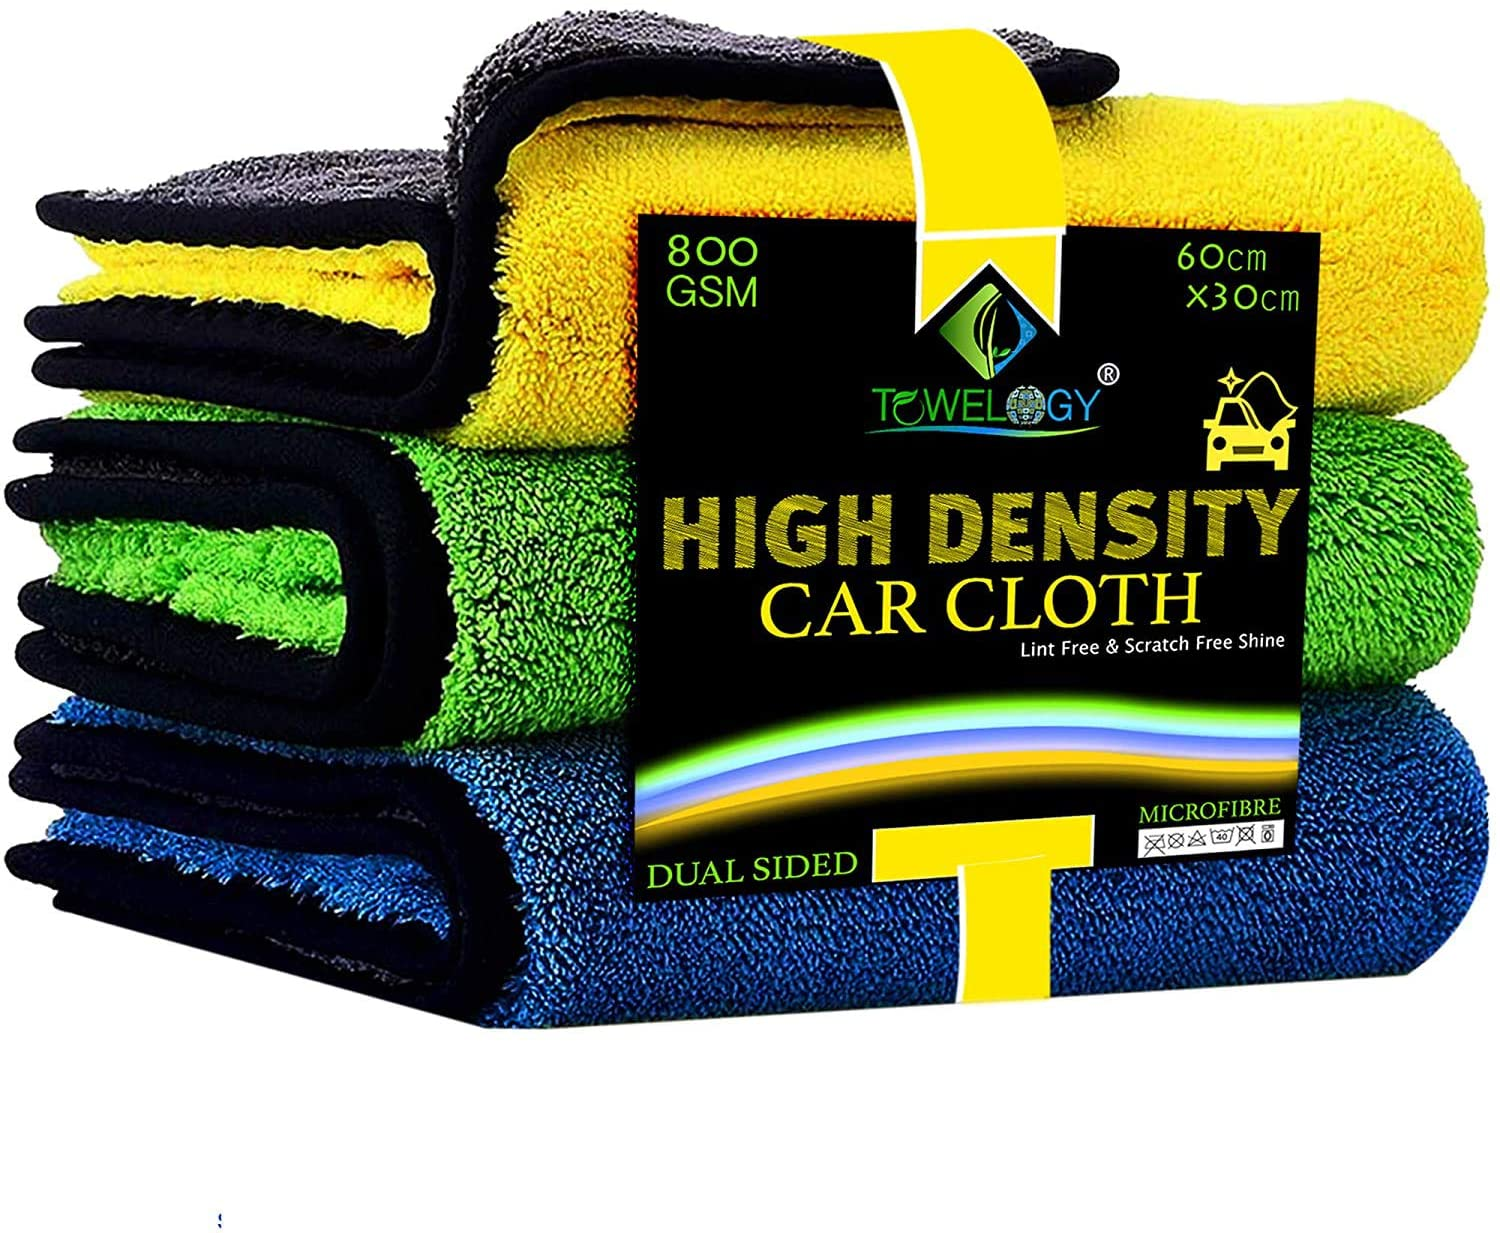 Microfibre Car Drying Cloth High-Density 800GSM Car Towels Assorted - Towelogy